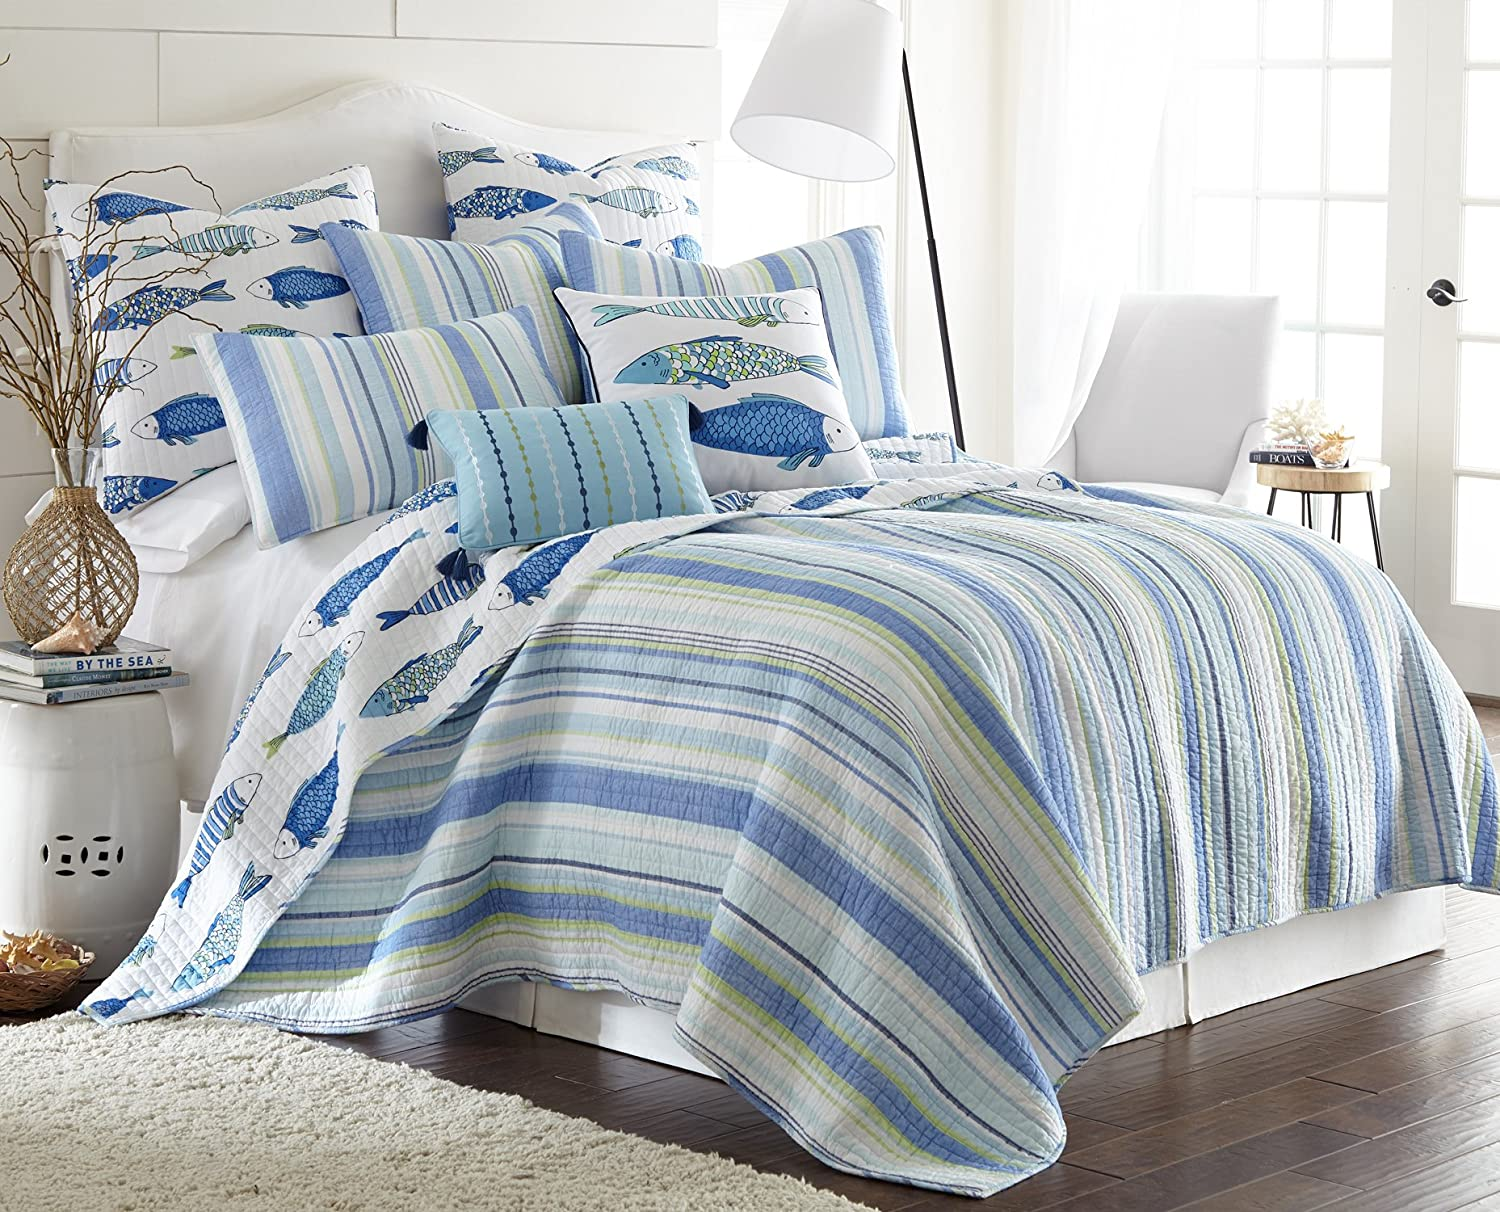 Levtex Home- Catalina Quilt Set -Twin Quilt + One Standard Pillow Sham - Striped Coastal Pattern in Blues and Greens - Quilt Size (68 x 86) and Pillow Sham Size (26 x 20)- Reversible Pattern -Cotton